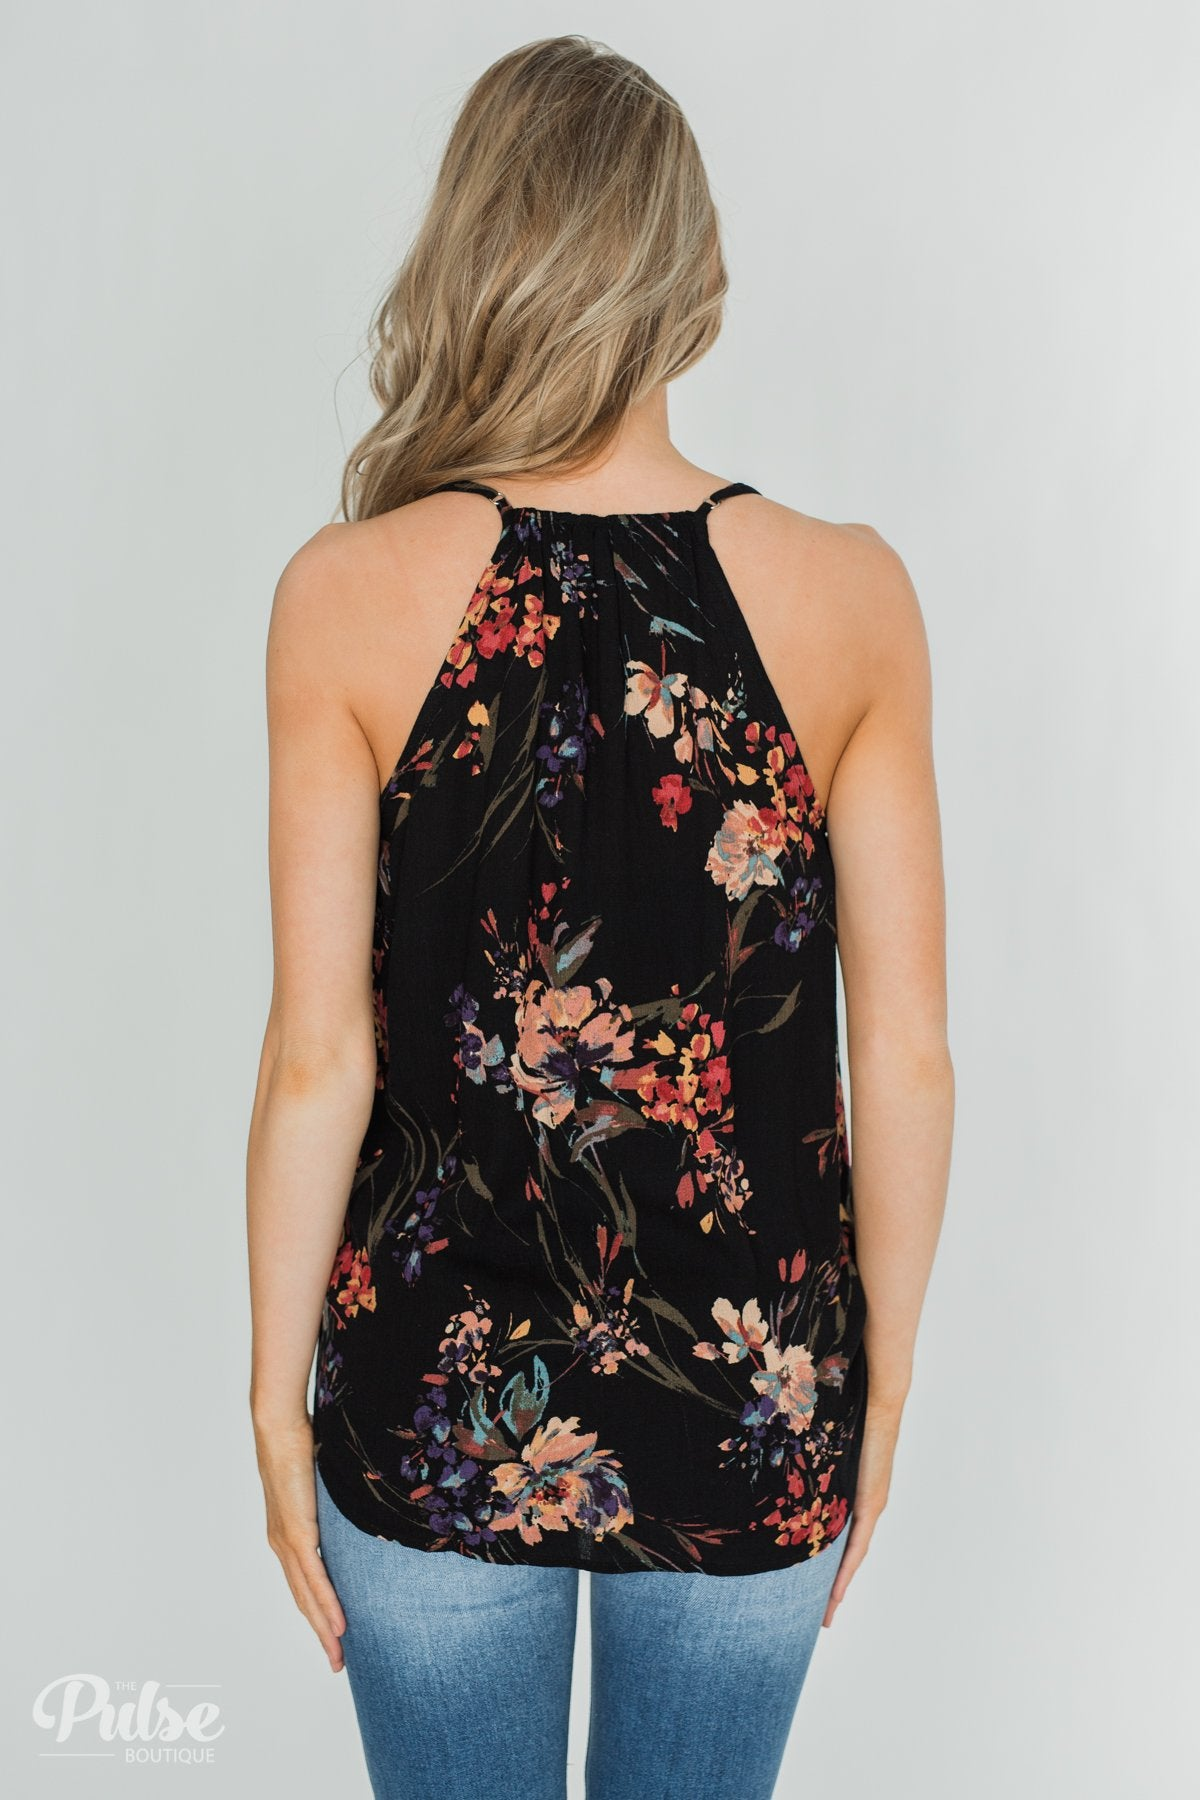 Beginning to Blossom Floral Tank Top - Black